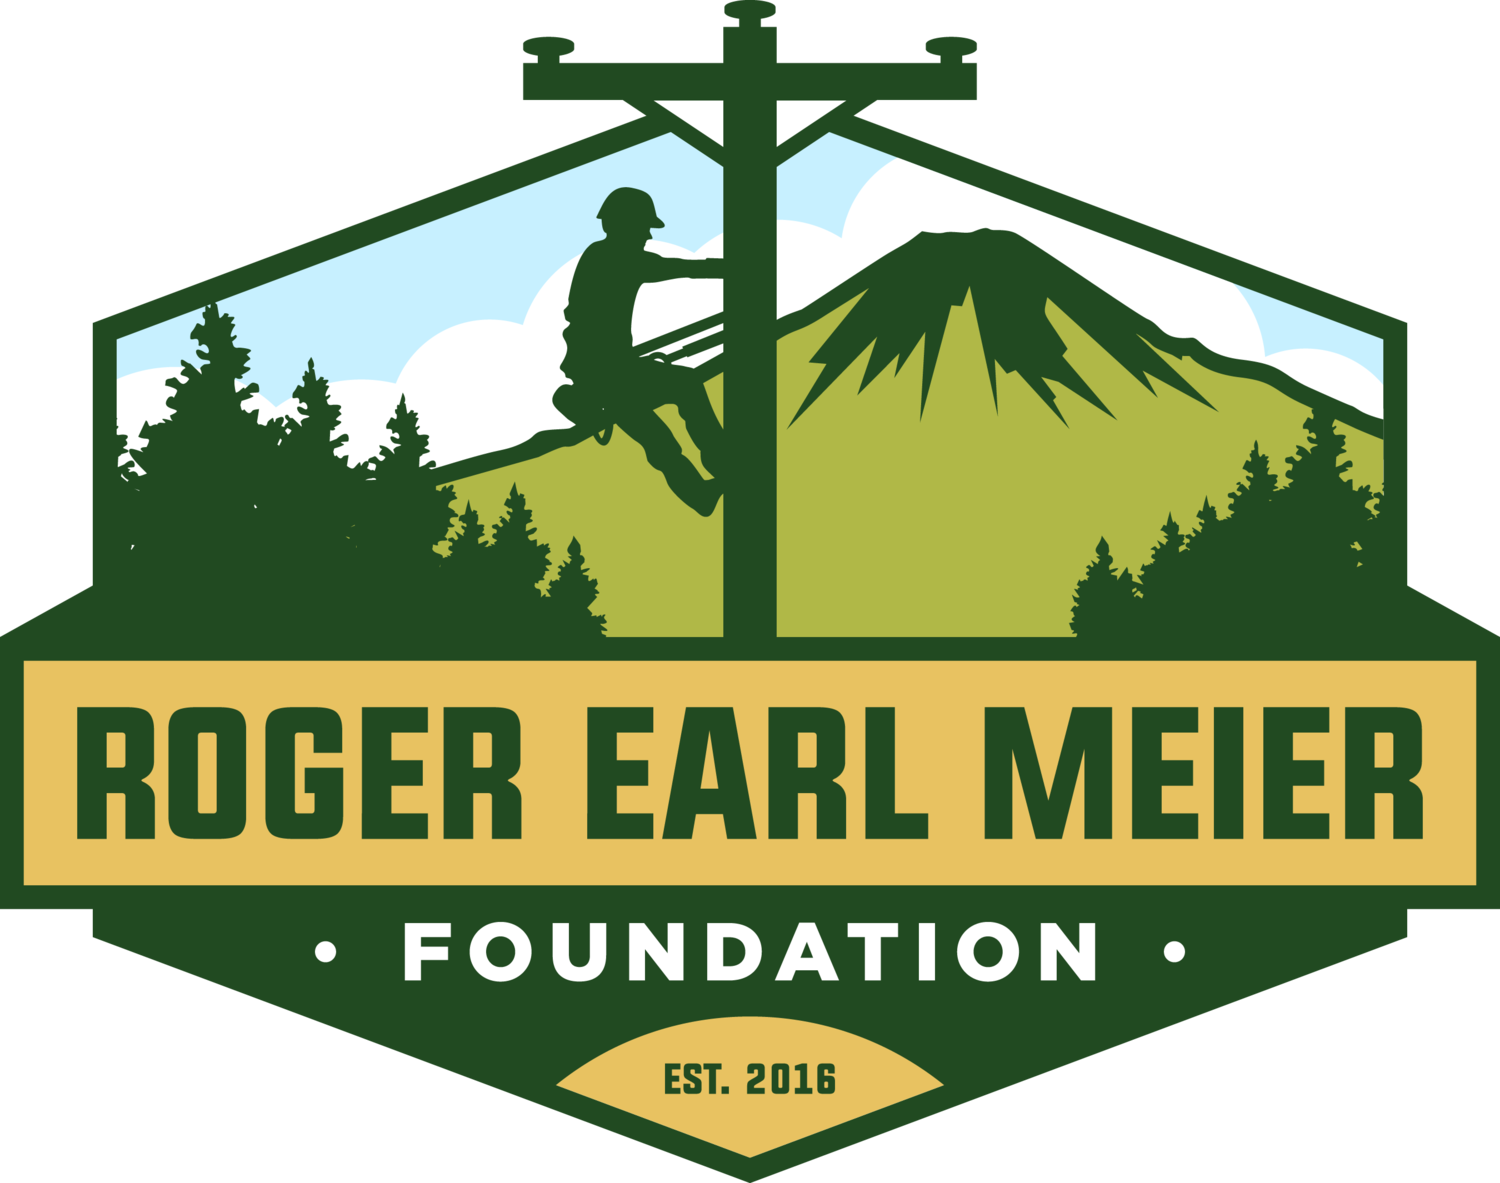 Roger Earl Meier Foundation